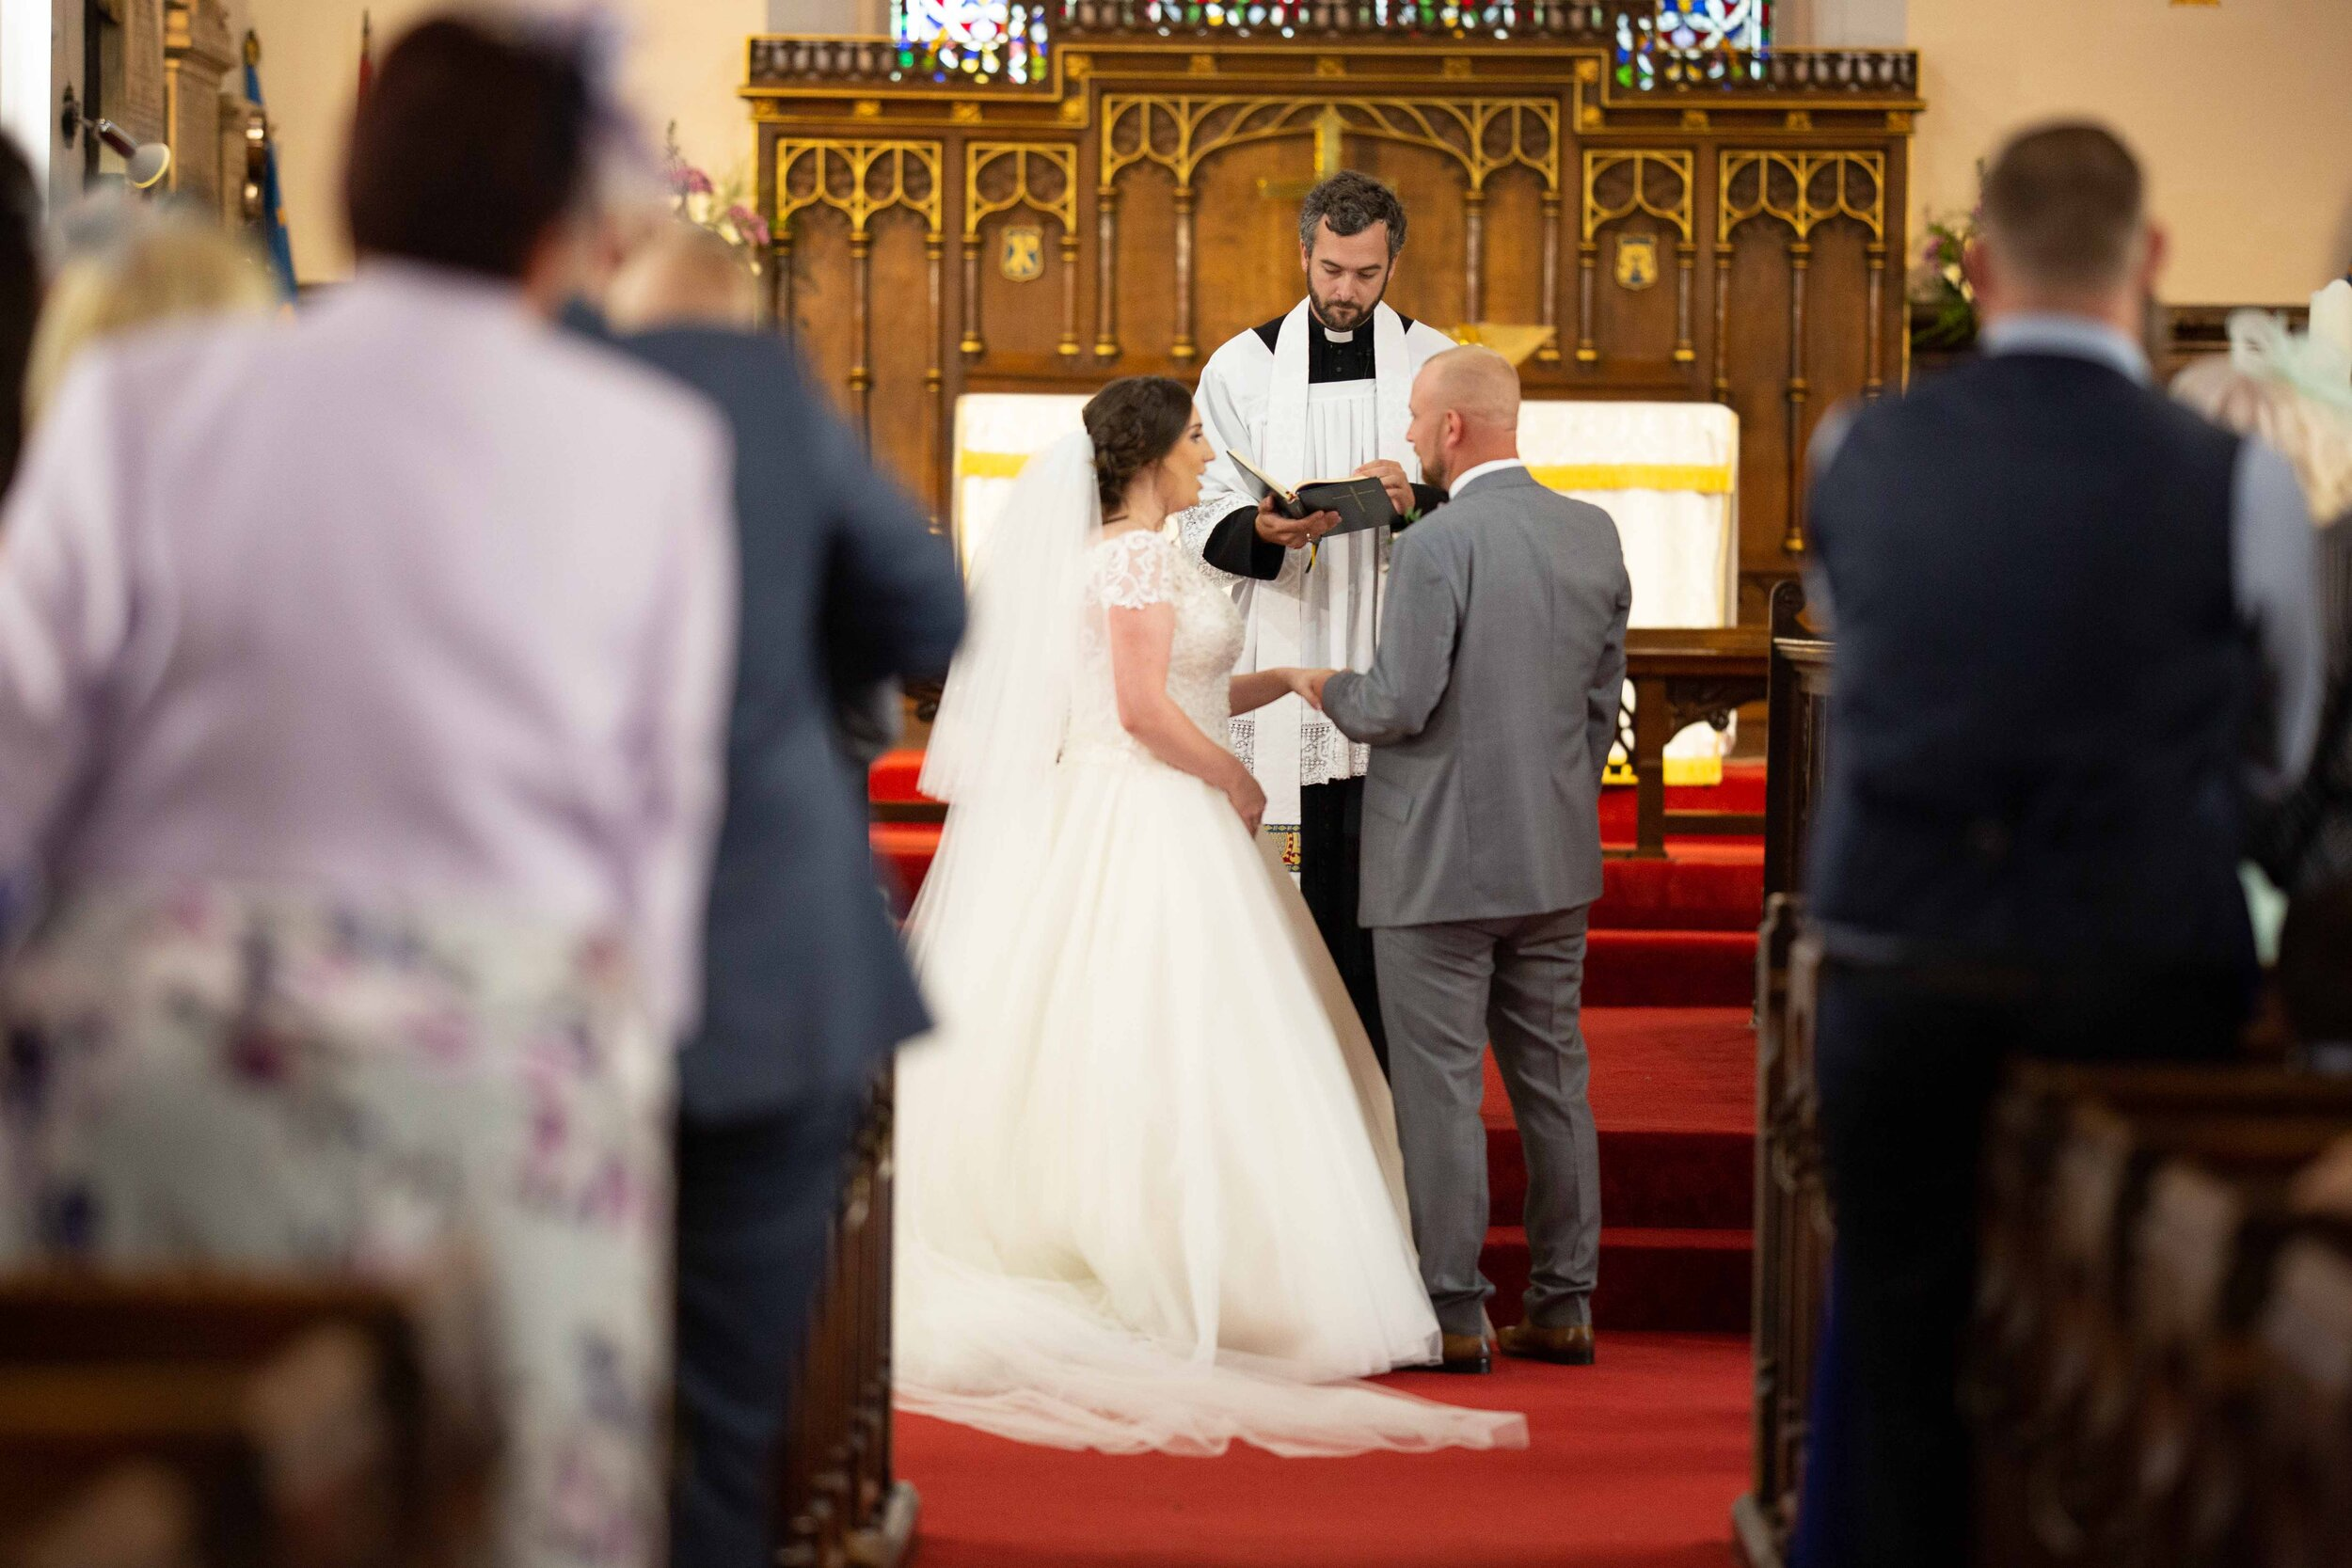 Lea Cooper photography - wedding photography - st Lawrence church dalaston West Midlands Willenhall Wednesday wedding photographer Brookfields club house cannock road - 22.JPG